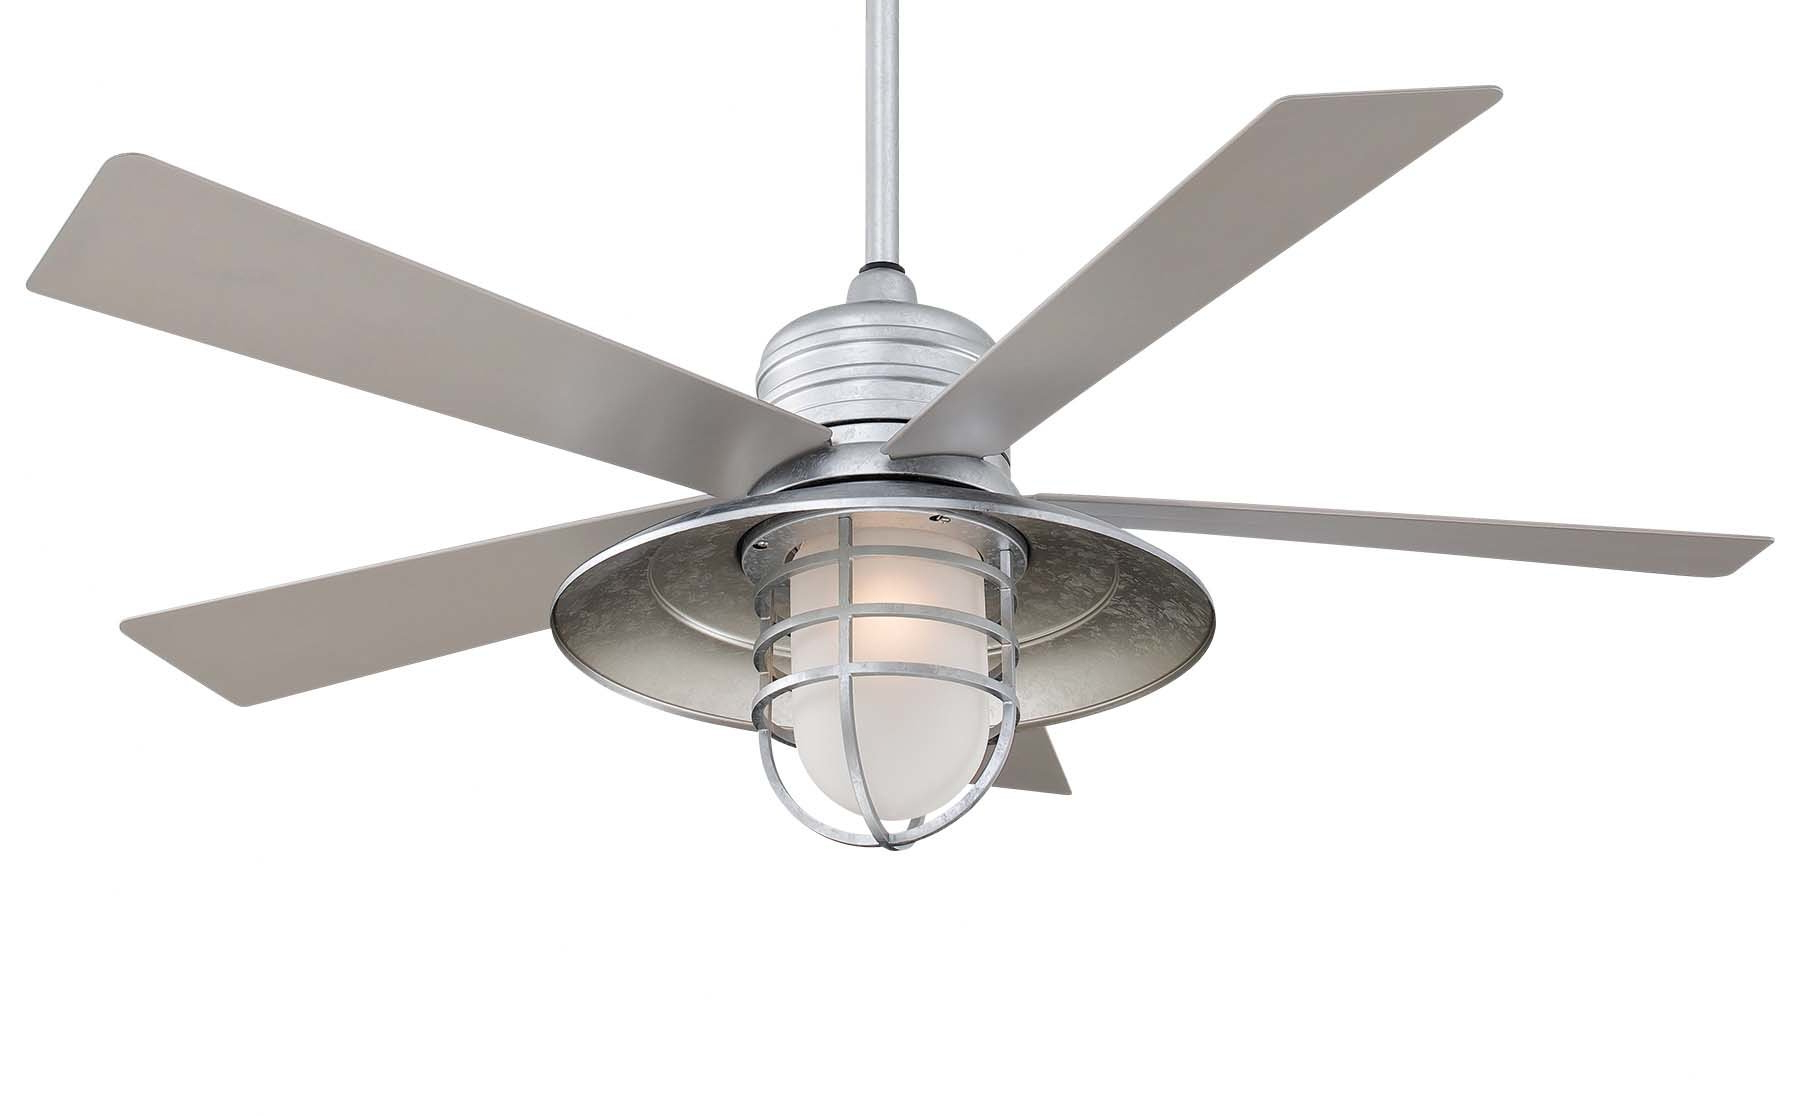 Ceiling : Rainman Blade Outdoor Ceiling Fan Cheap Fans Image With Current Kalea 5 Blade Outdoor Ceiling Fans (View 13 of 20)